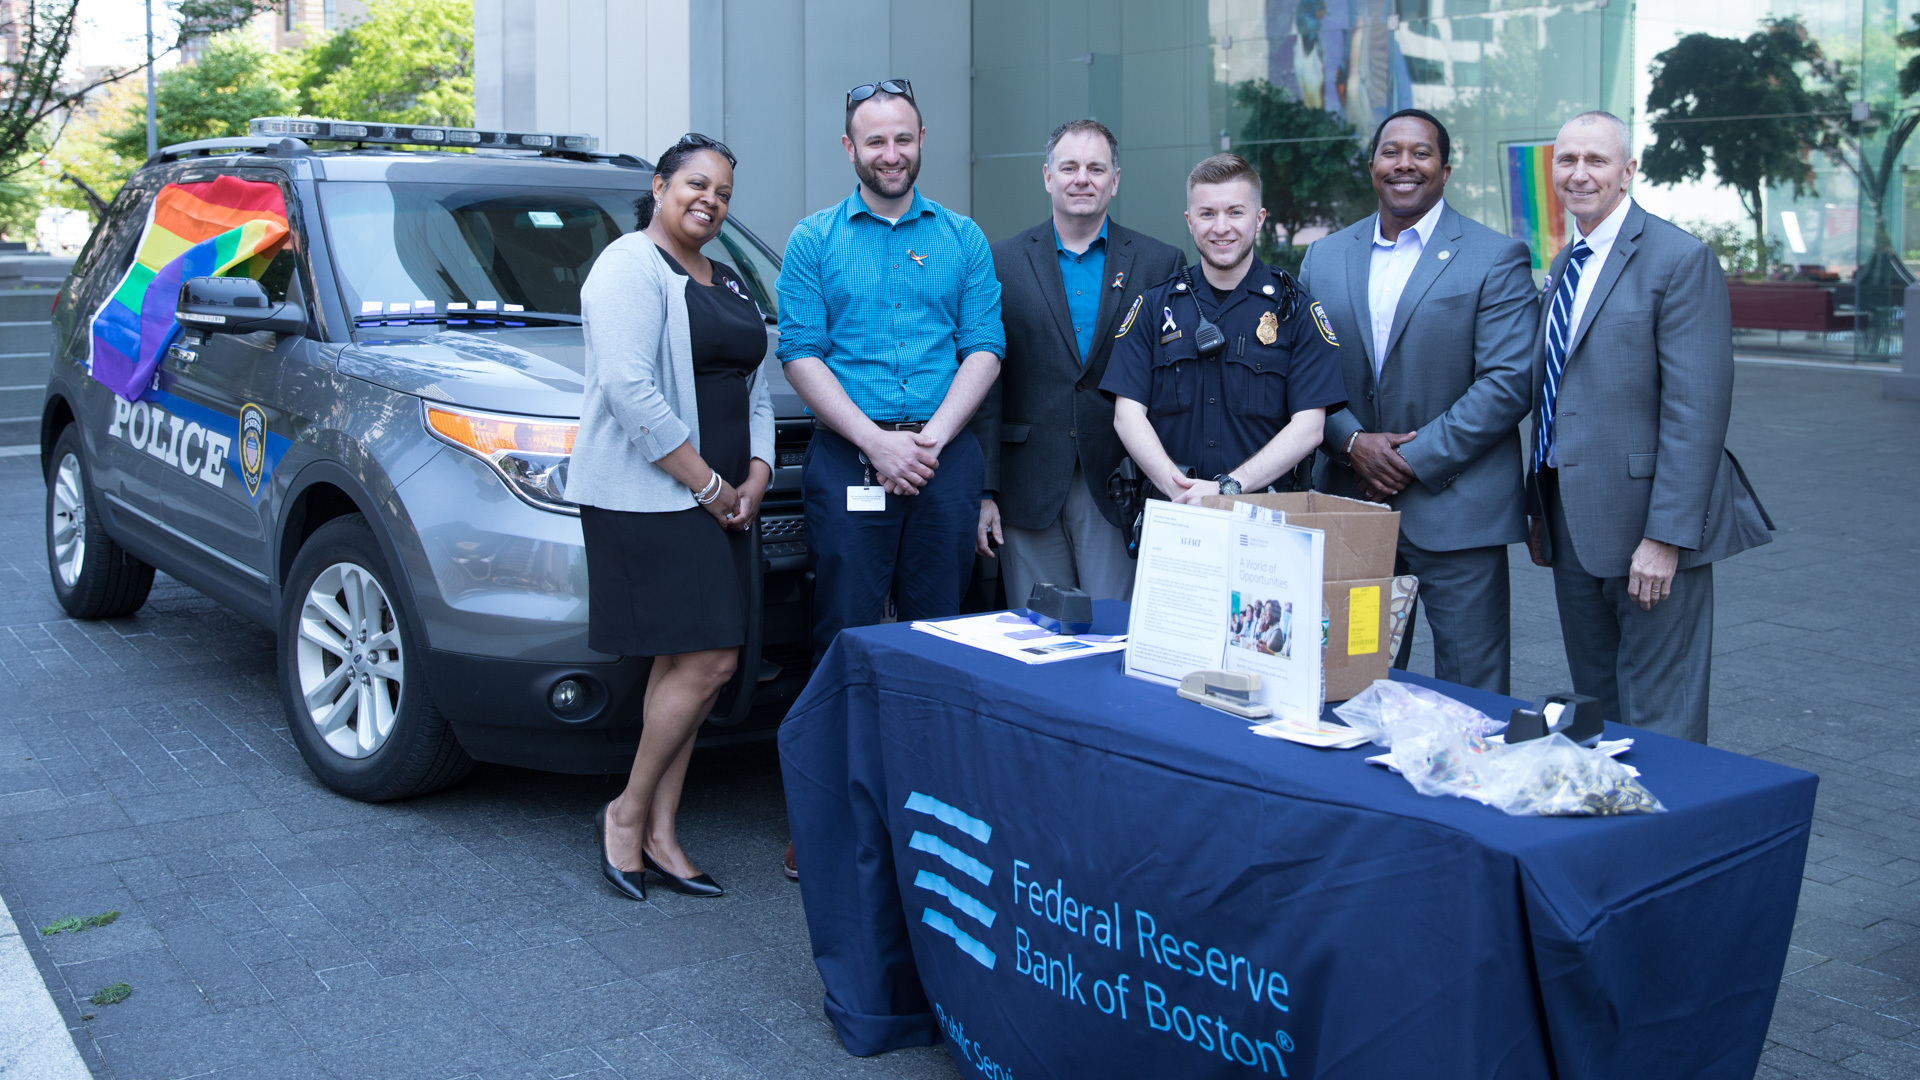 federal reserve bank of boston staff posing in front of the law enforcement cruiser with a pride flag long the side of it.